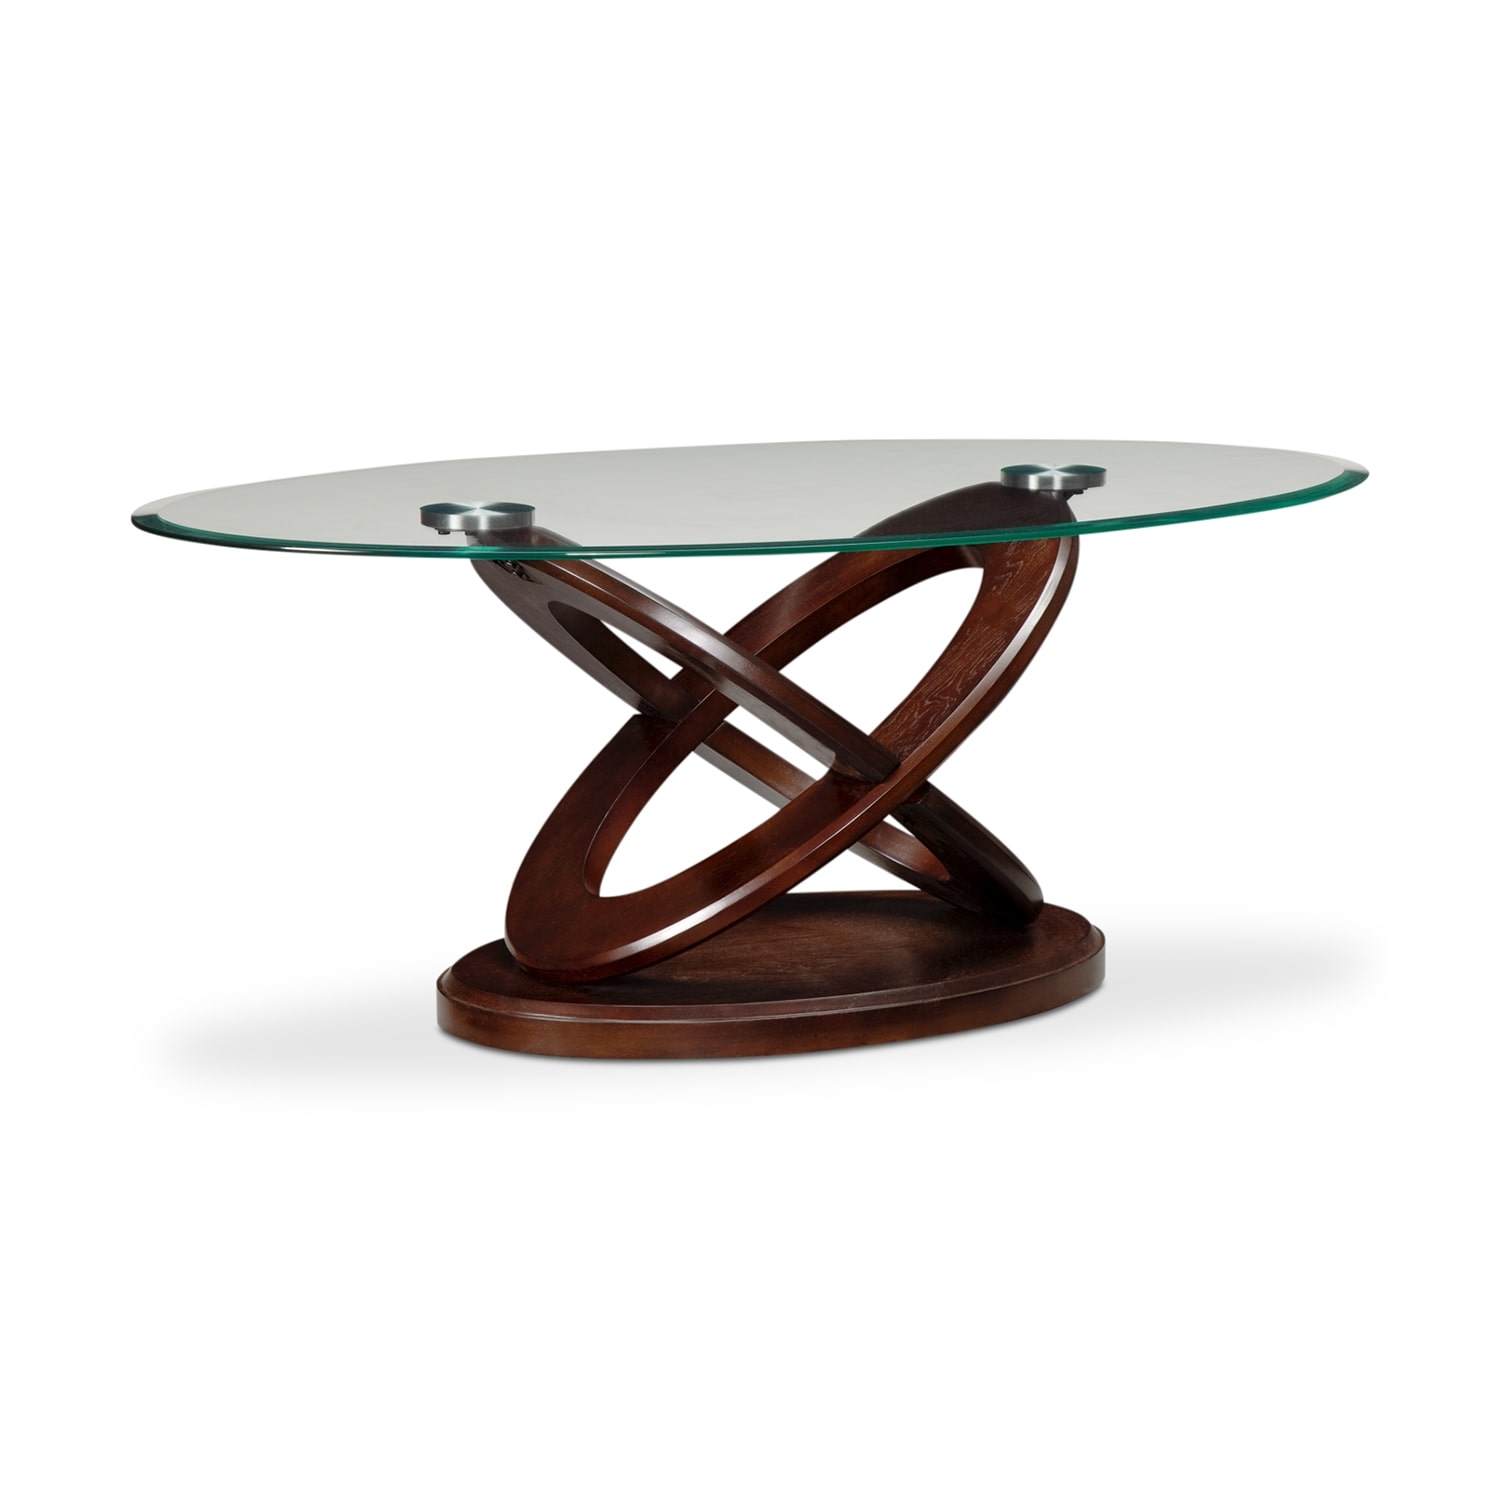 [Atlas Cocktail Table]